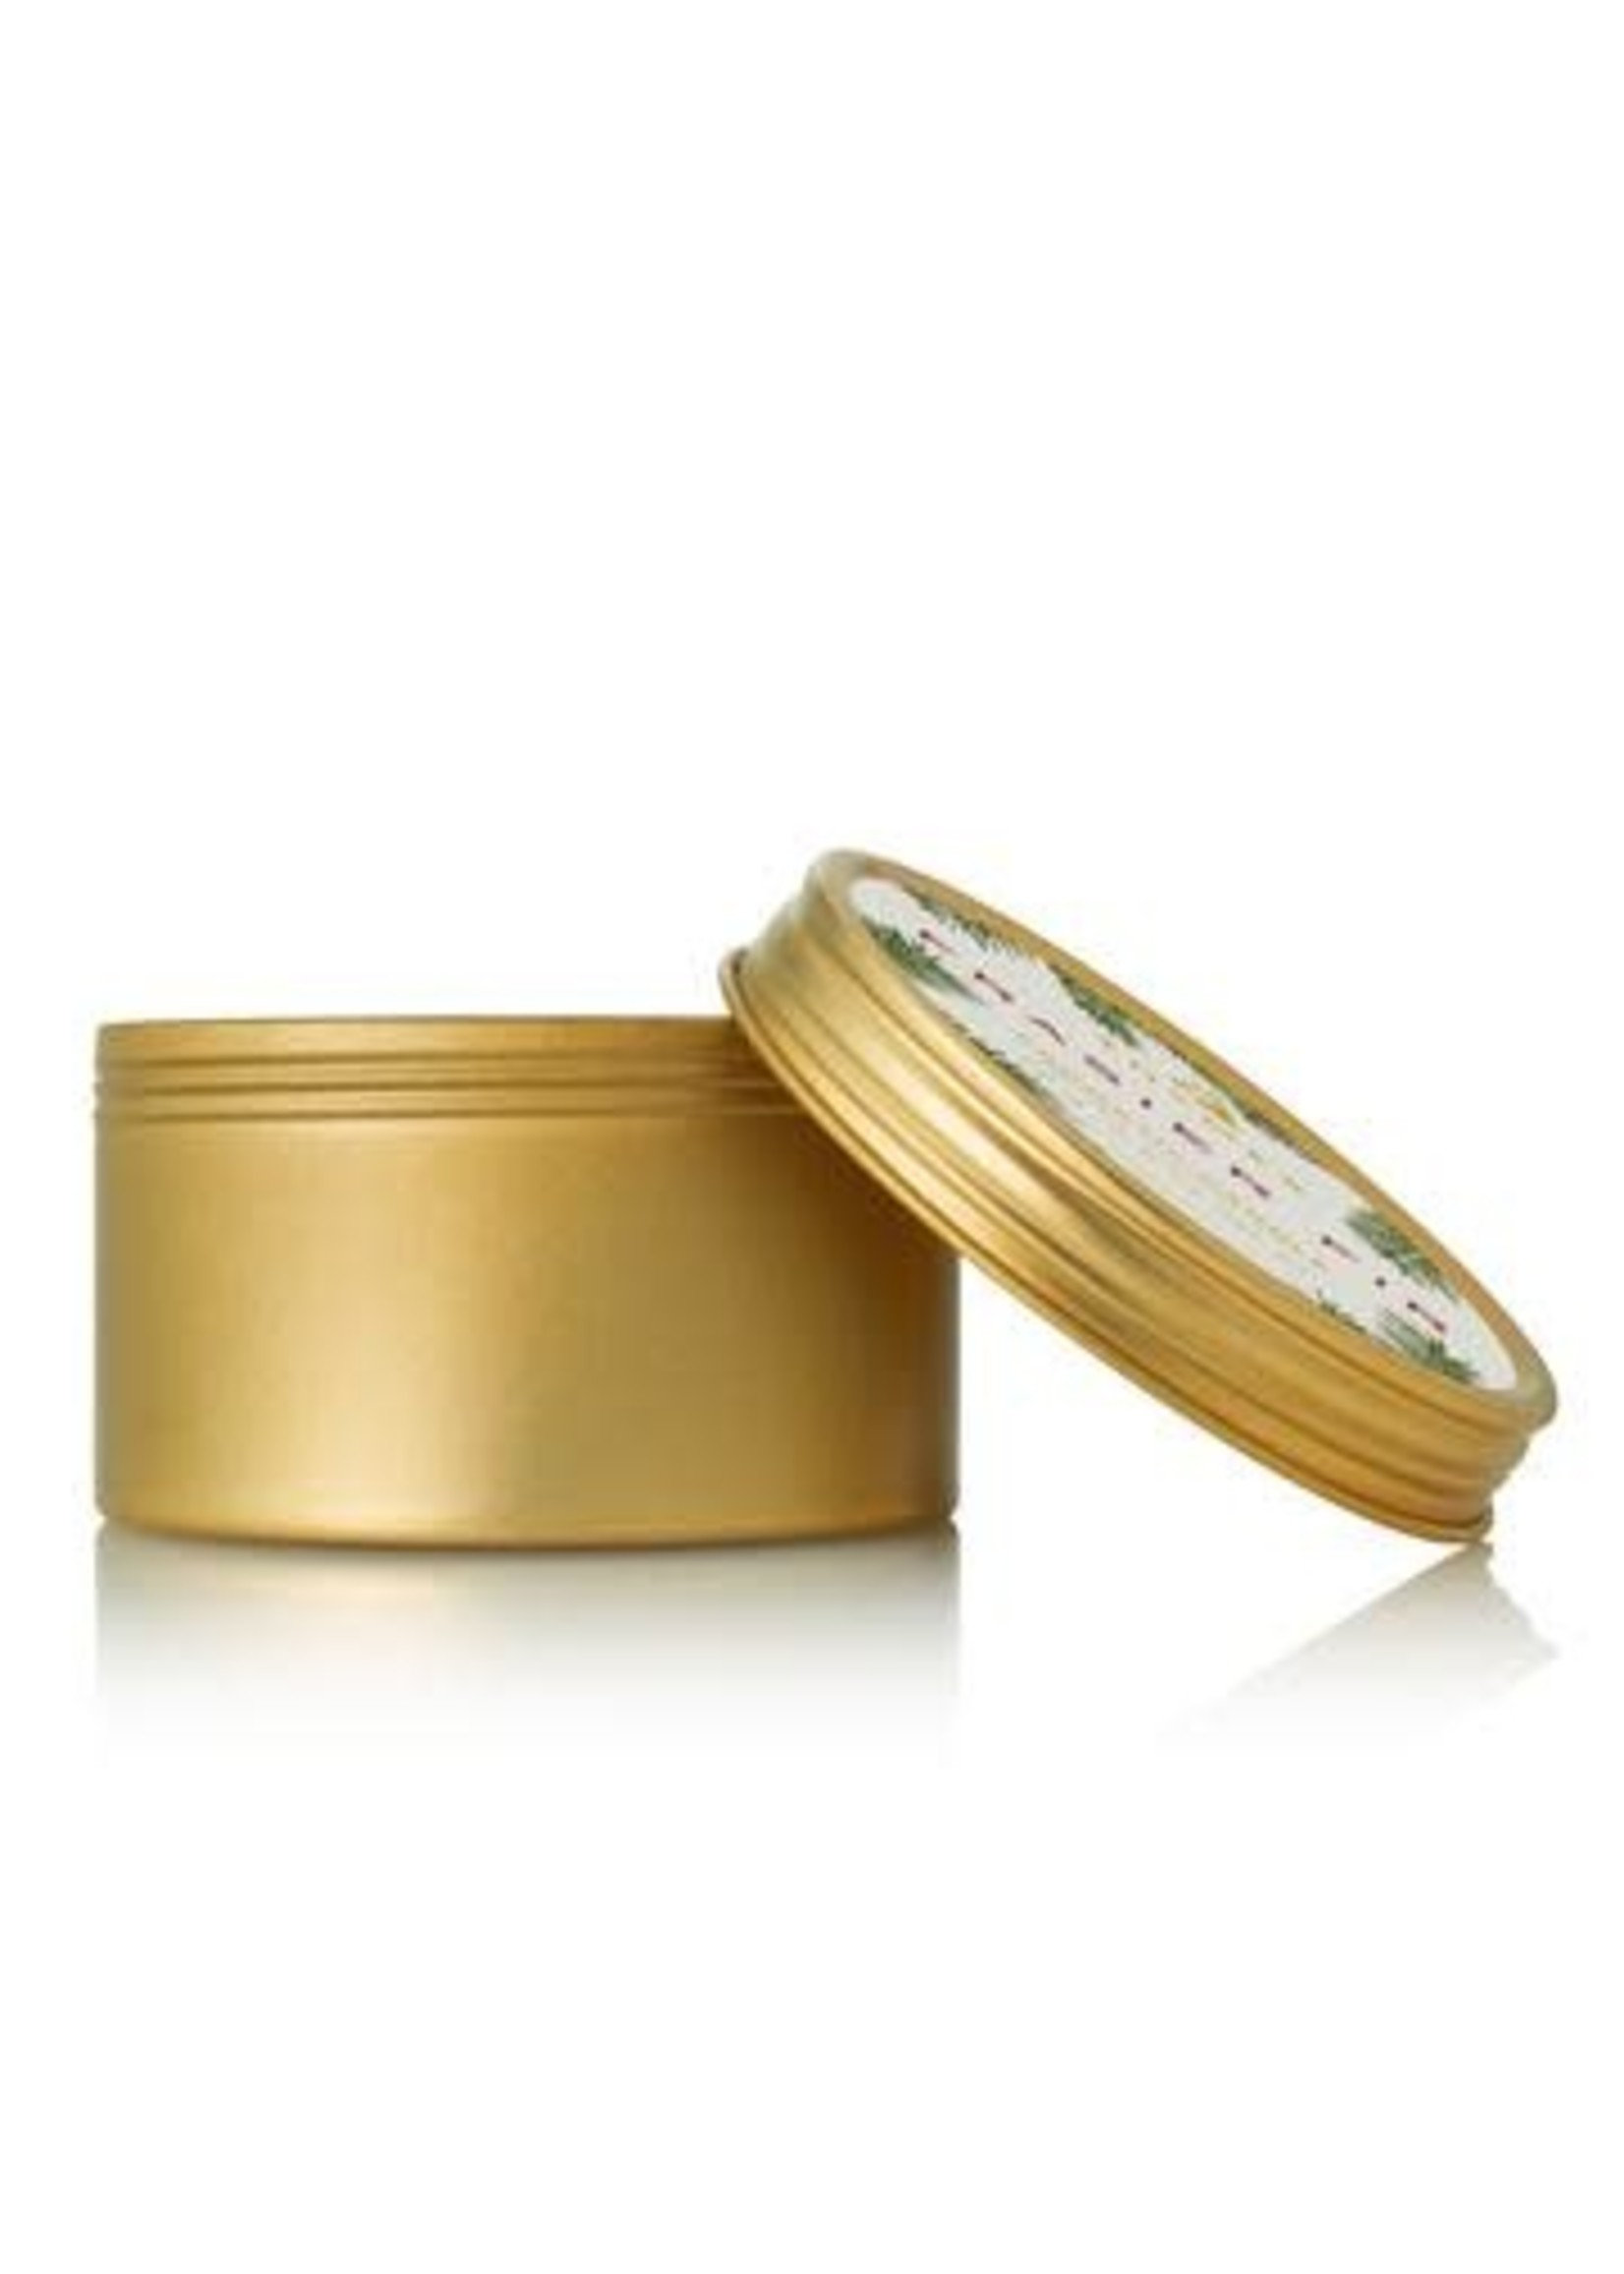 Thymes Frasier Fir Poured Candle - Travel Tin